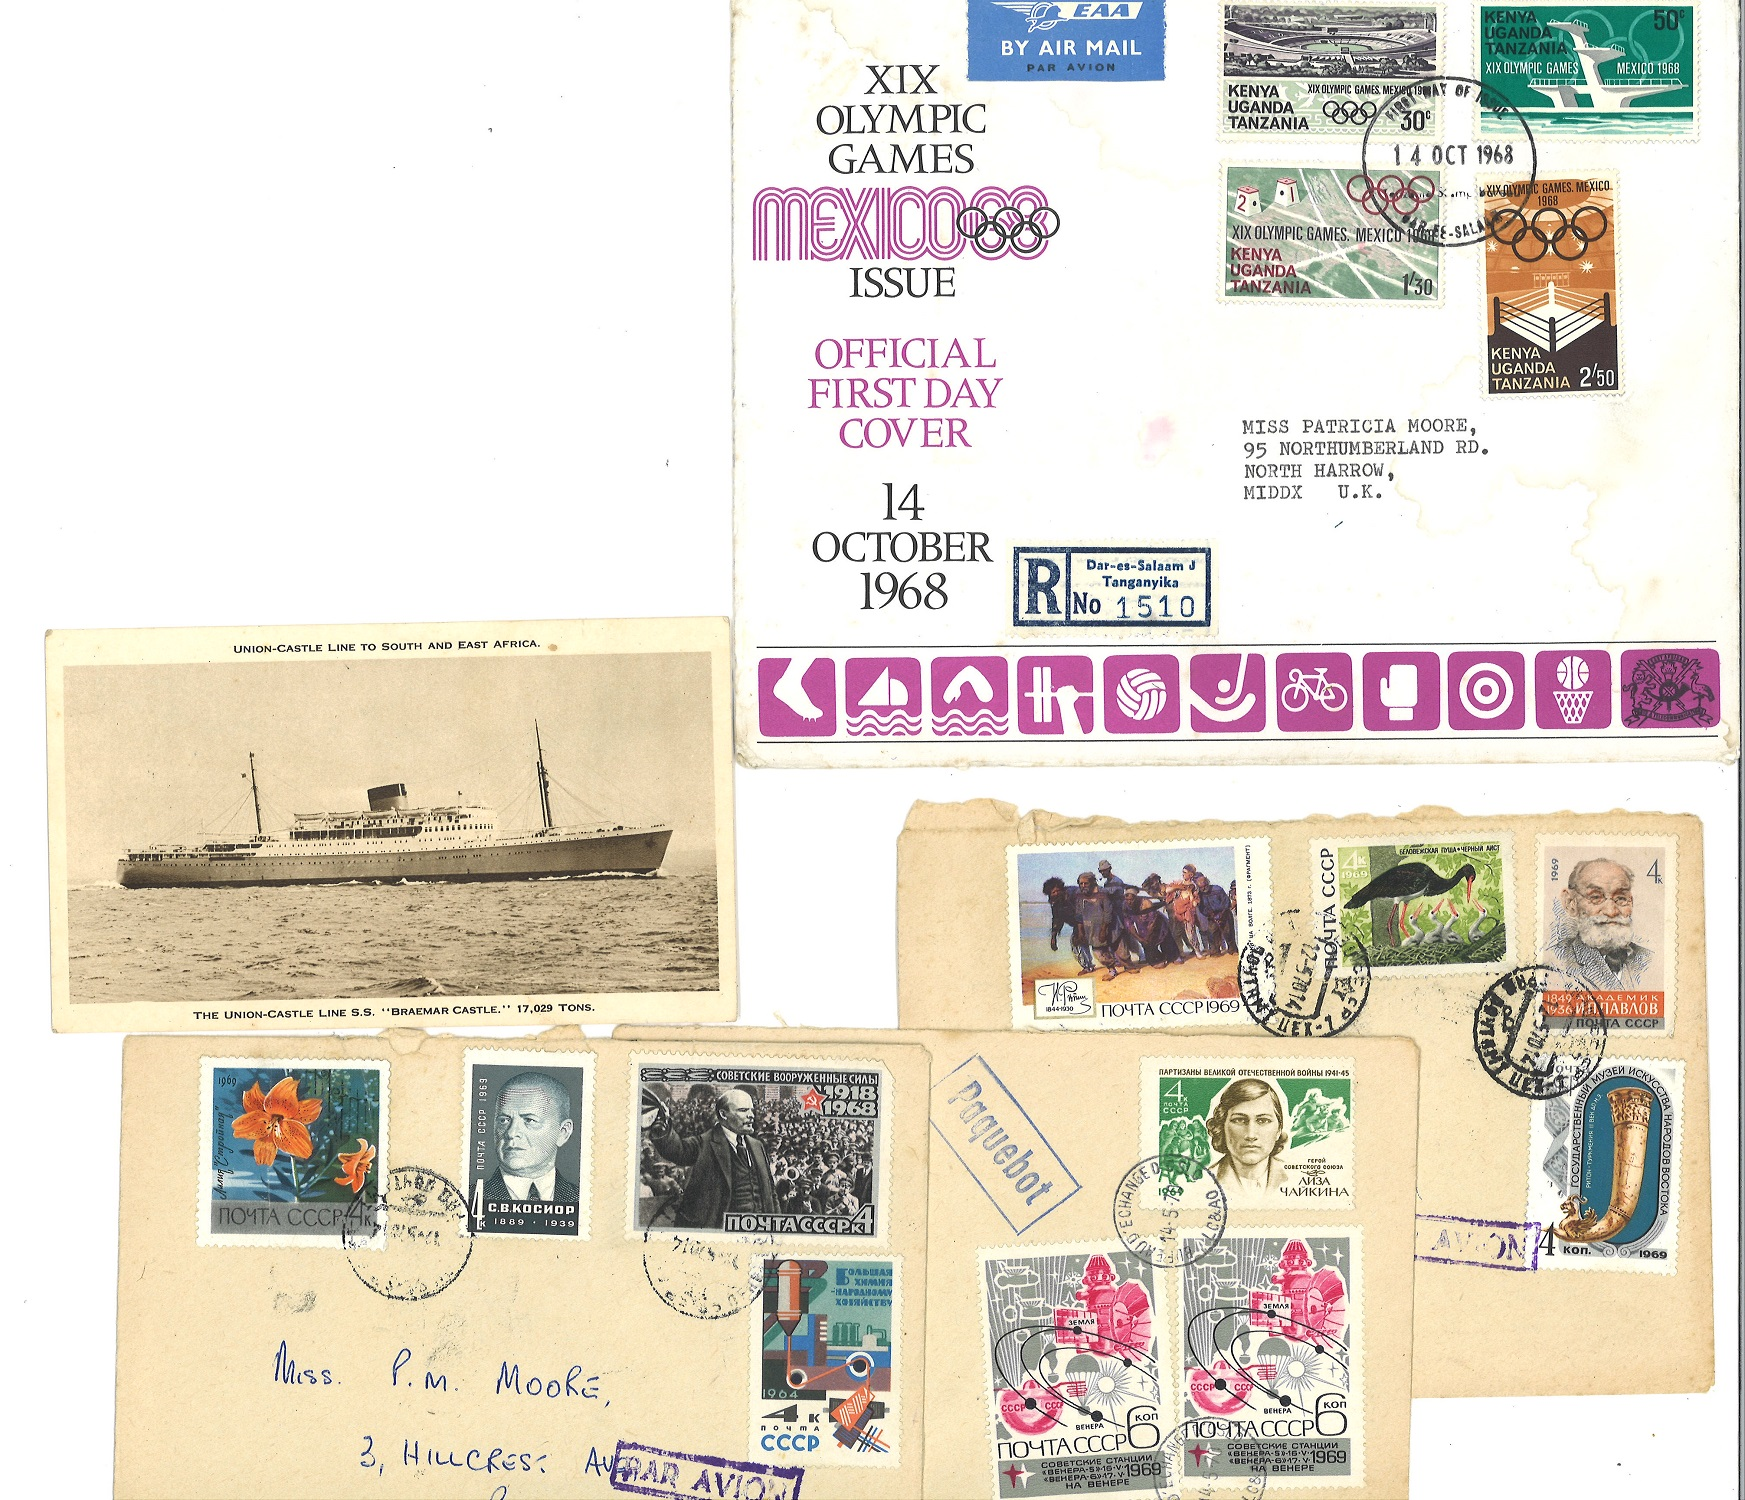 Vintage Post Collection Includes cover Zanzibar stamp 1960s, The Union Castle Line S. S Braemar